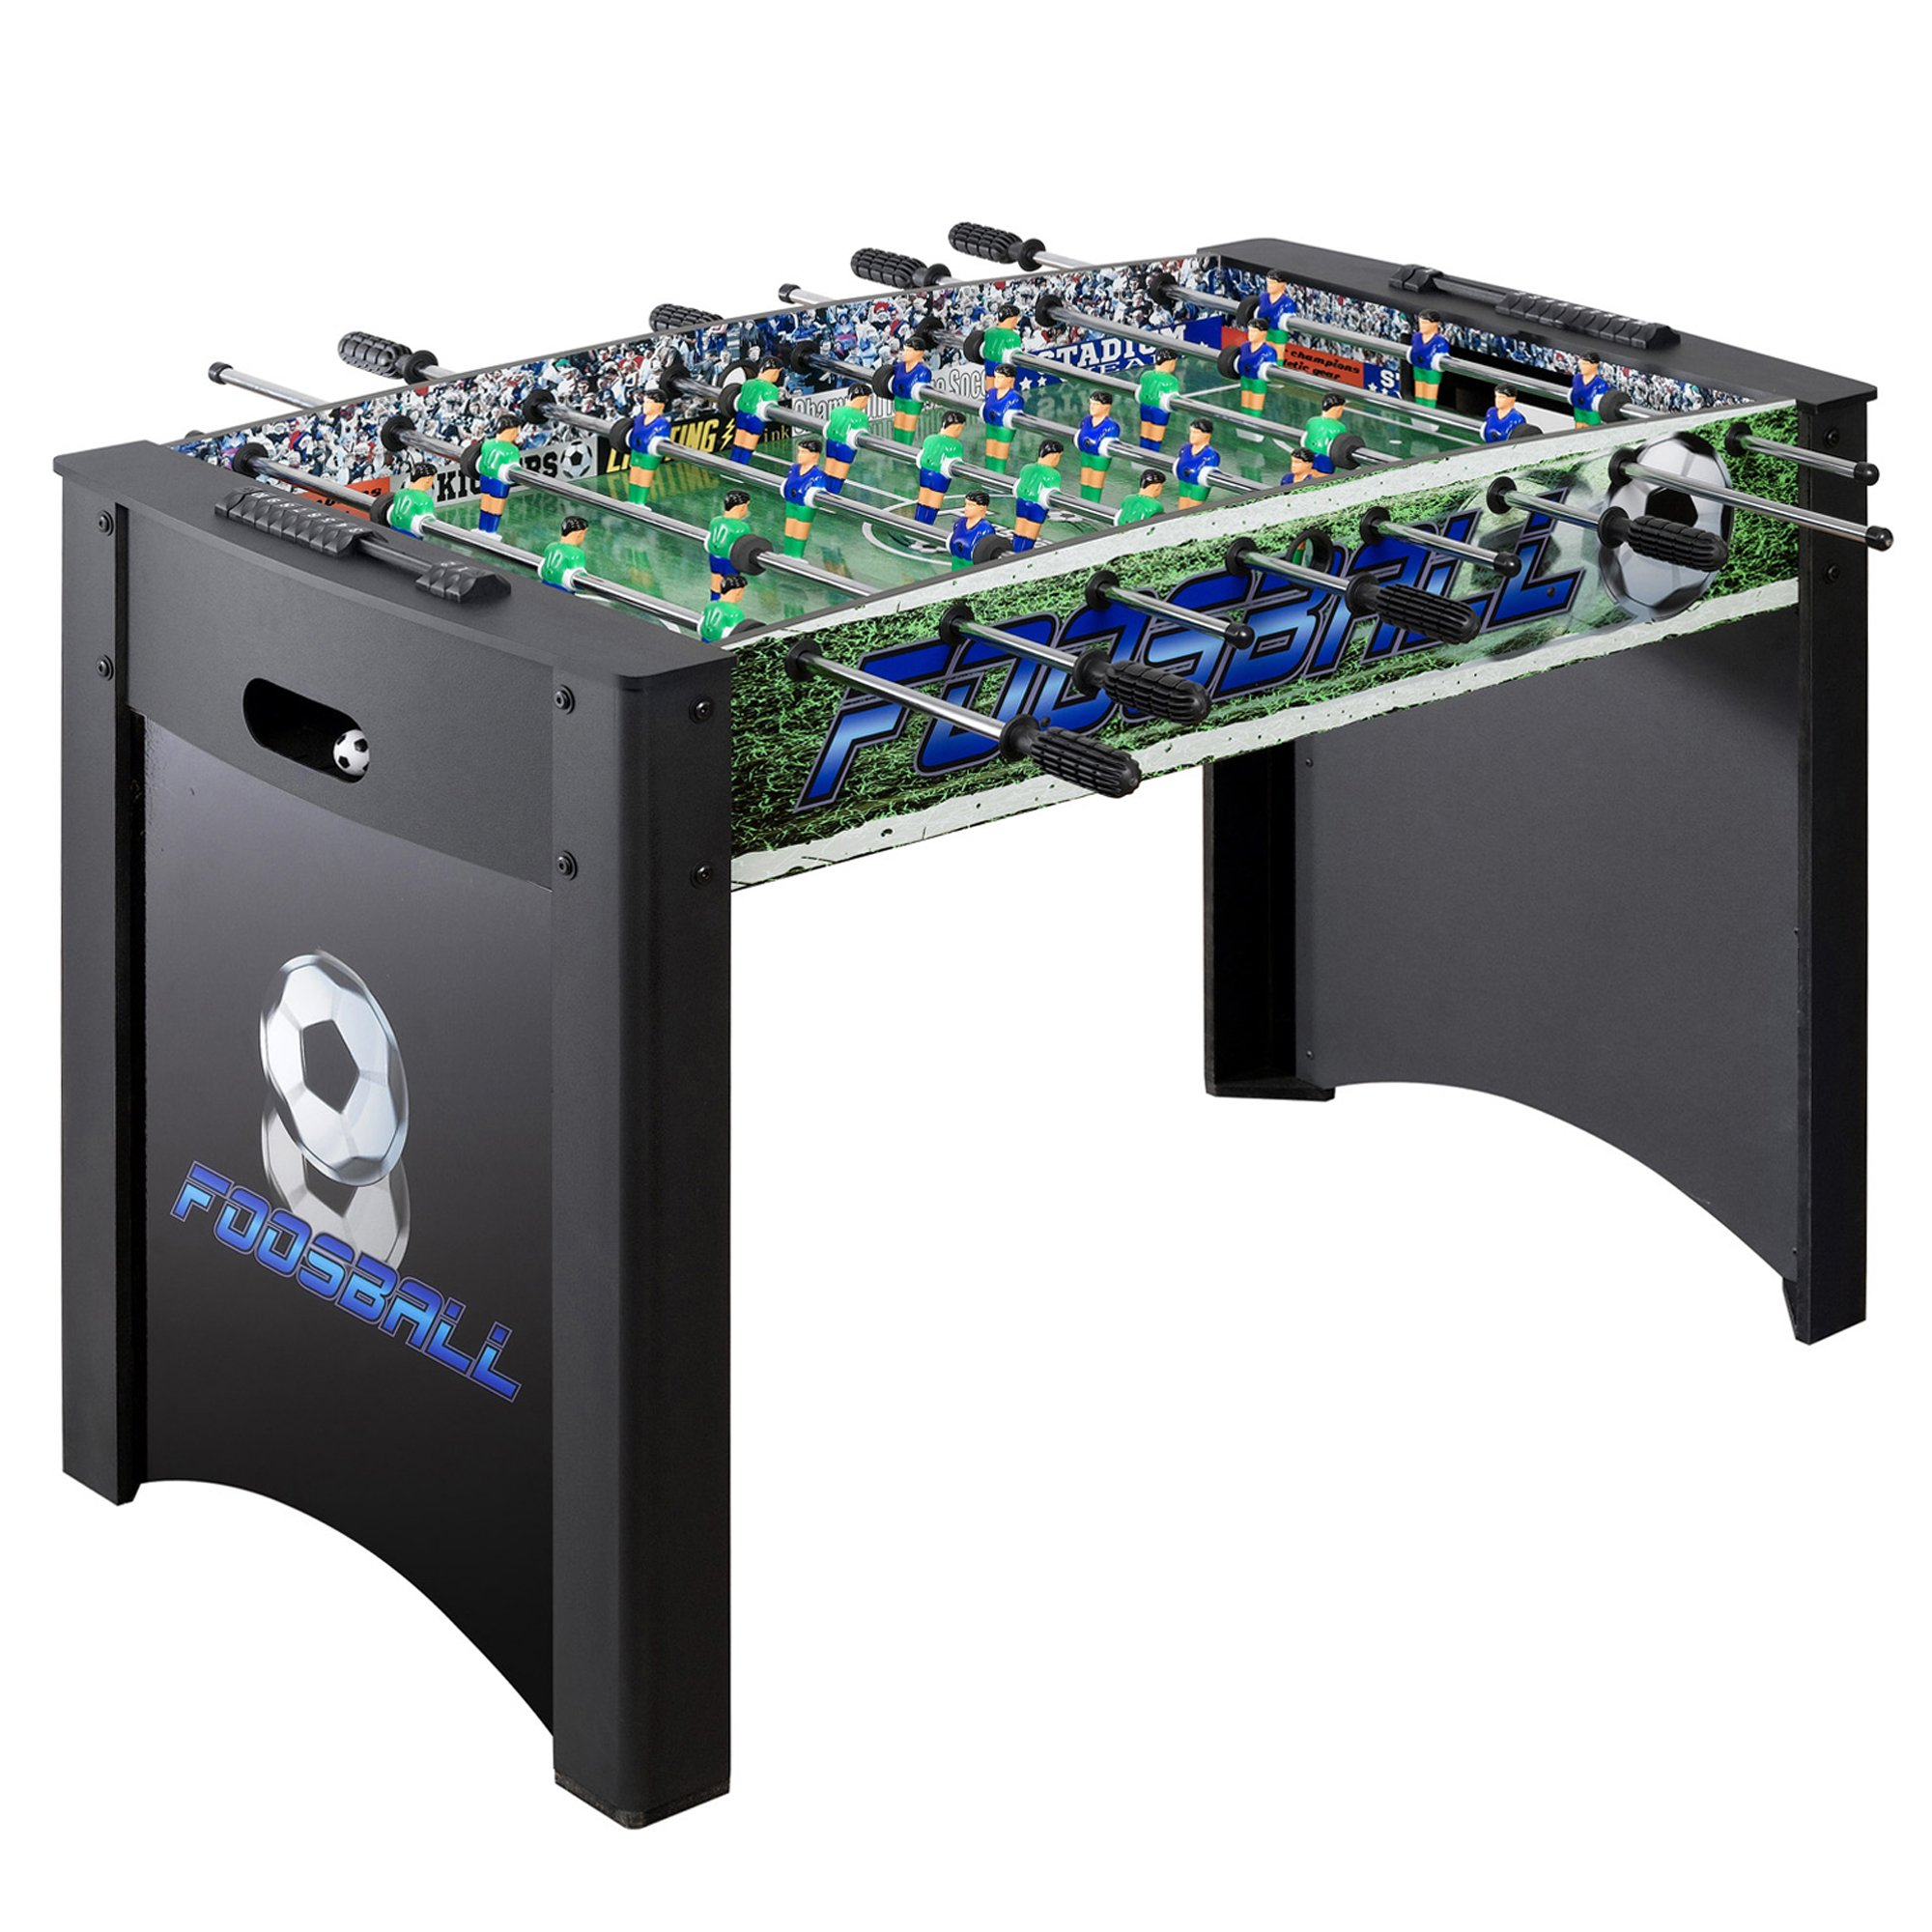 Hathaway Playoff 4' Foosball Table, Soccer Game for Kids and Adults with Ergonomic Handles, Analog Scoring and Leg Levelers by Hathaway